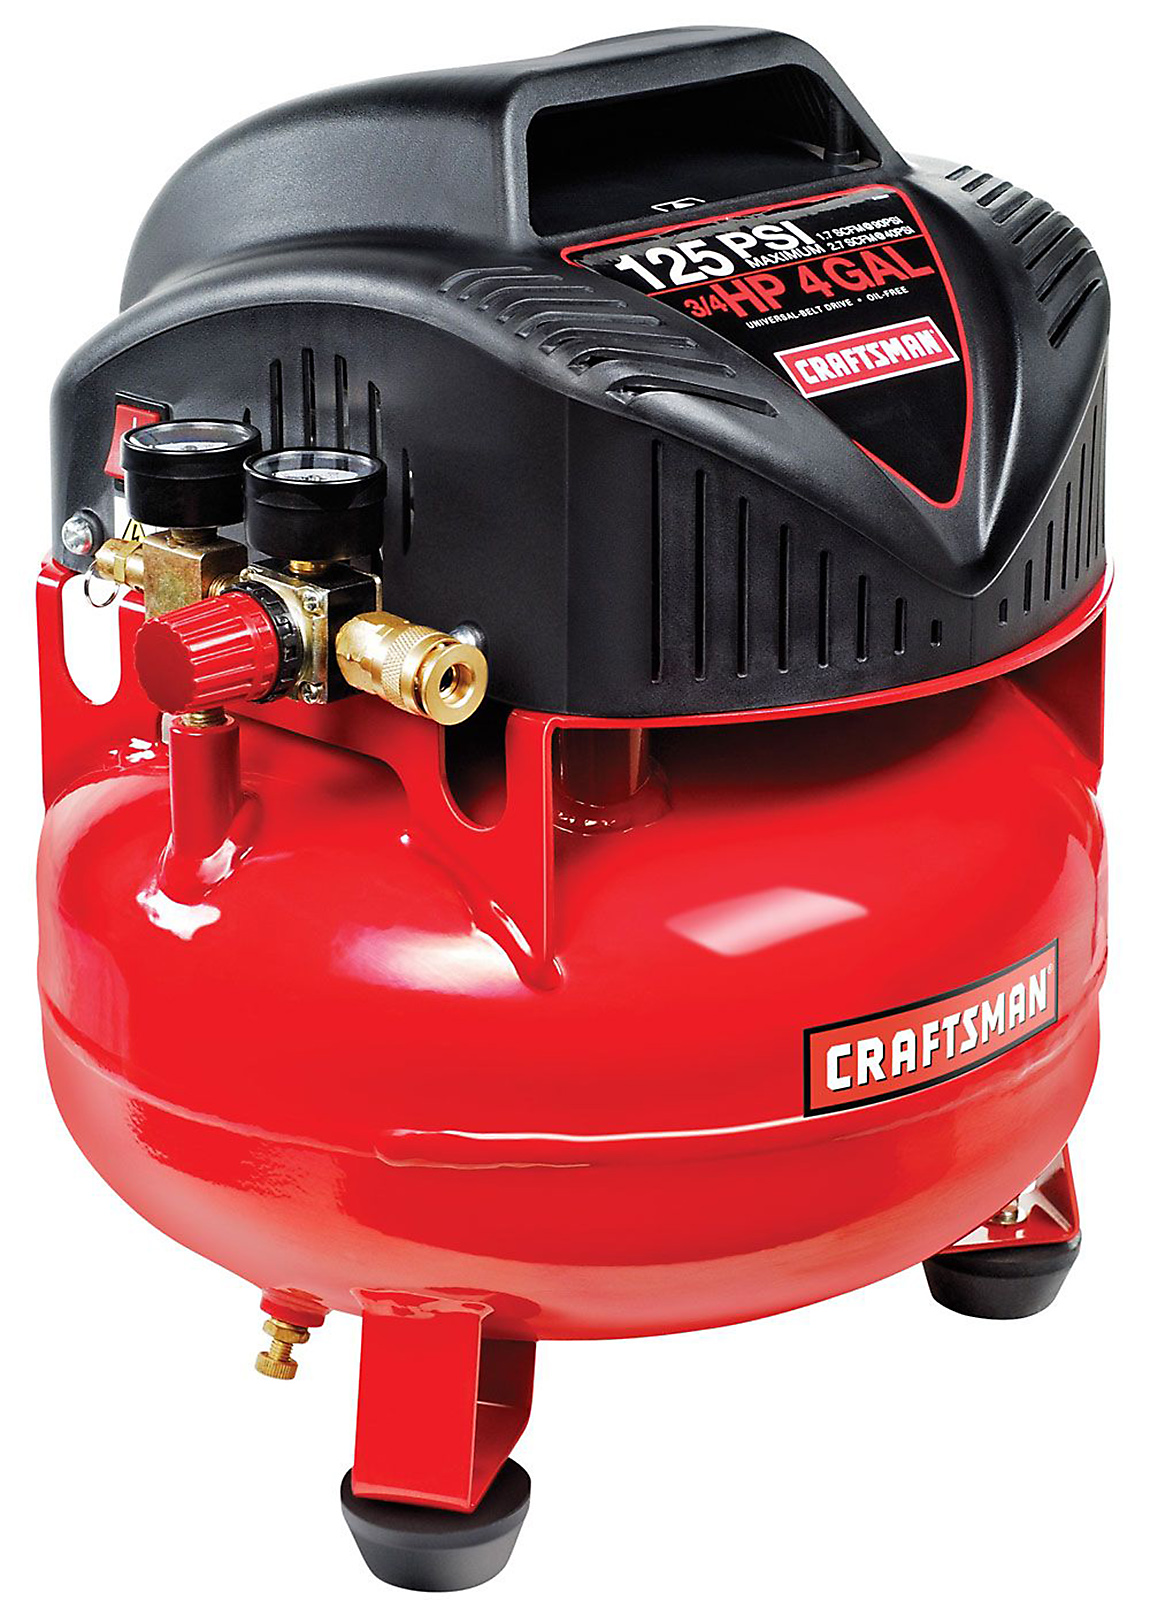 hight resolution of craftsman 4 gallon 0 75 hp oil free pancake air compressor 125 max psi gma c compressor wiring diagram sears air compressor wiring diagram